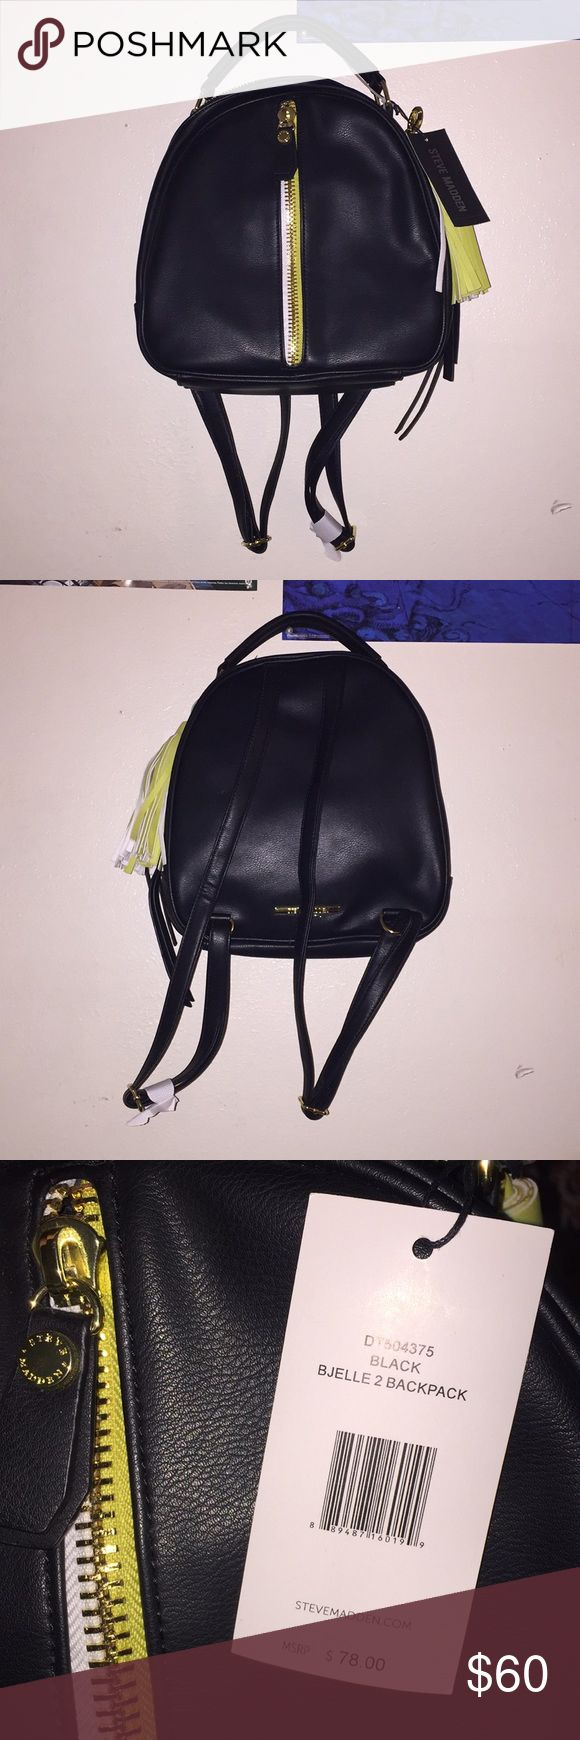 NWT Steve Madden Backpack Black steve madden backpack, with yellow and white detail. Never used, new with tags. 🙂 Steve Madden Bags Backpacks